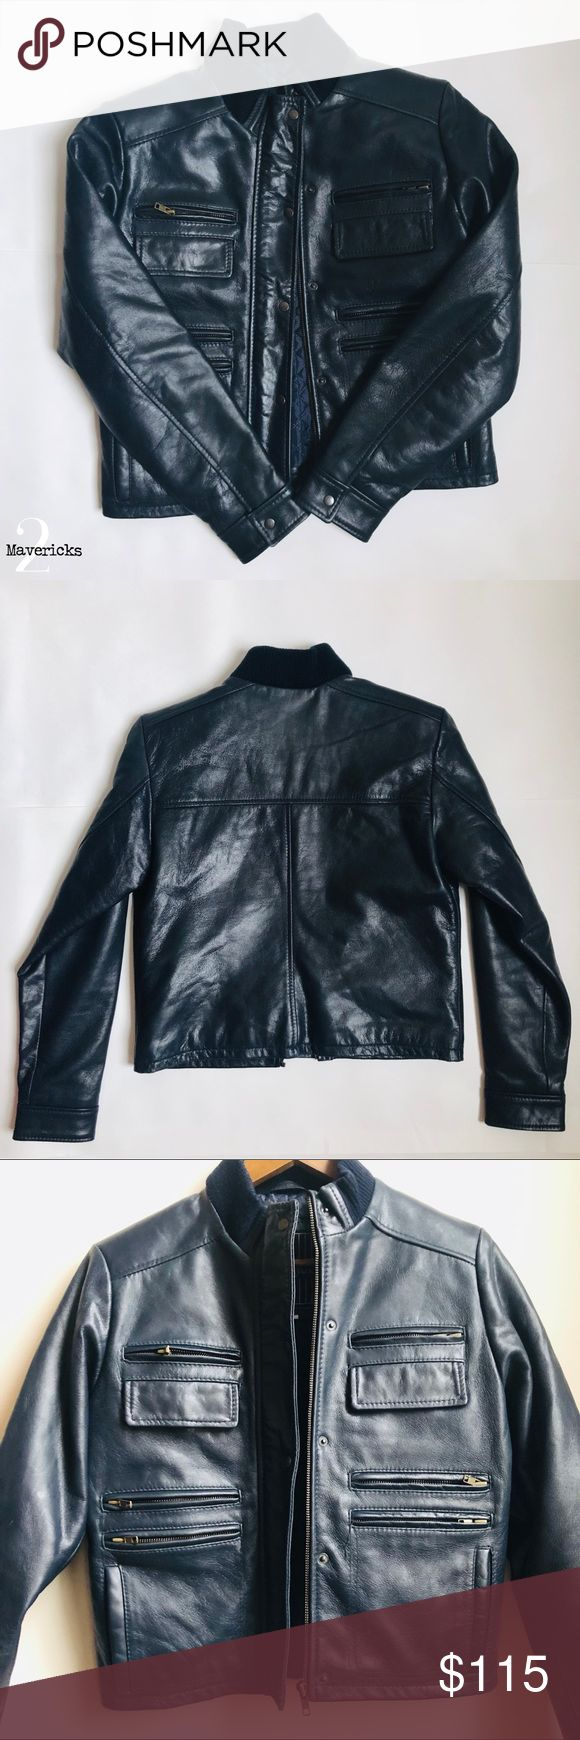 Ladies Navy Blue Superior New York Leather Jacket Such a